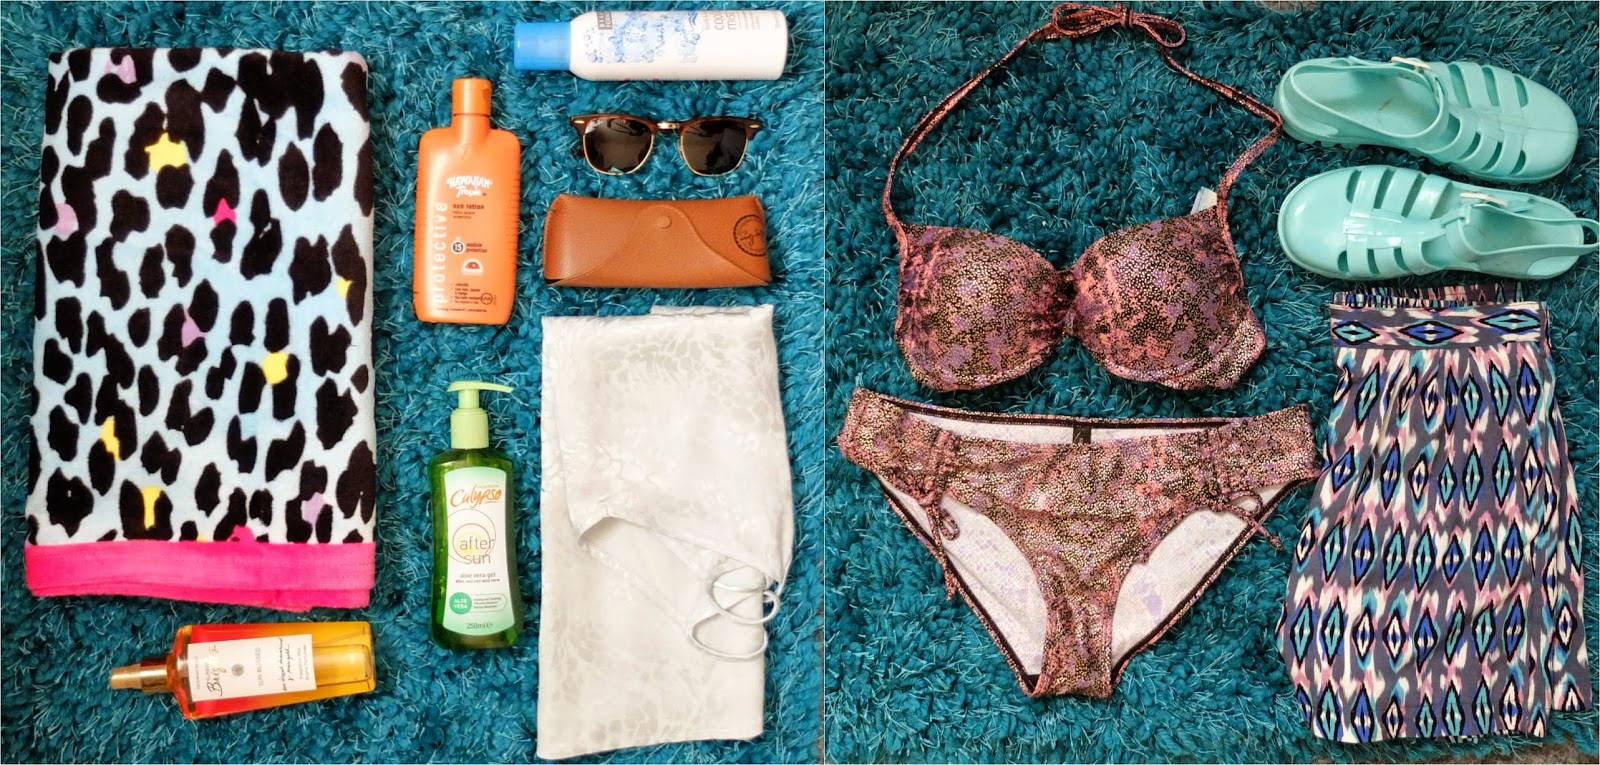 beach holiday essentials with ann summers on hello terri lowe uk blog.